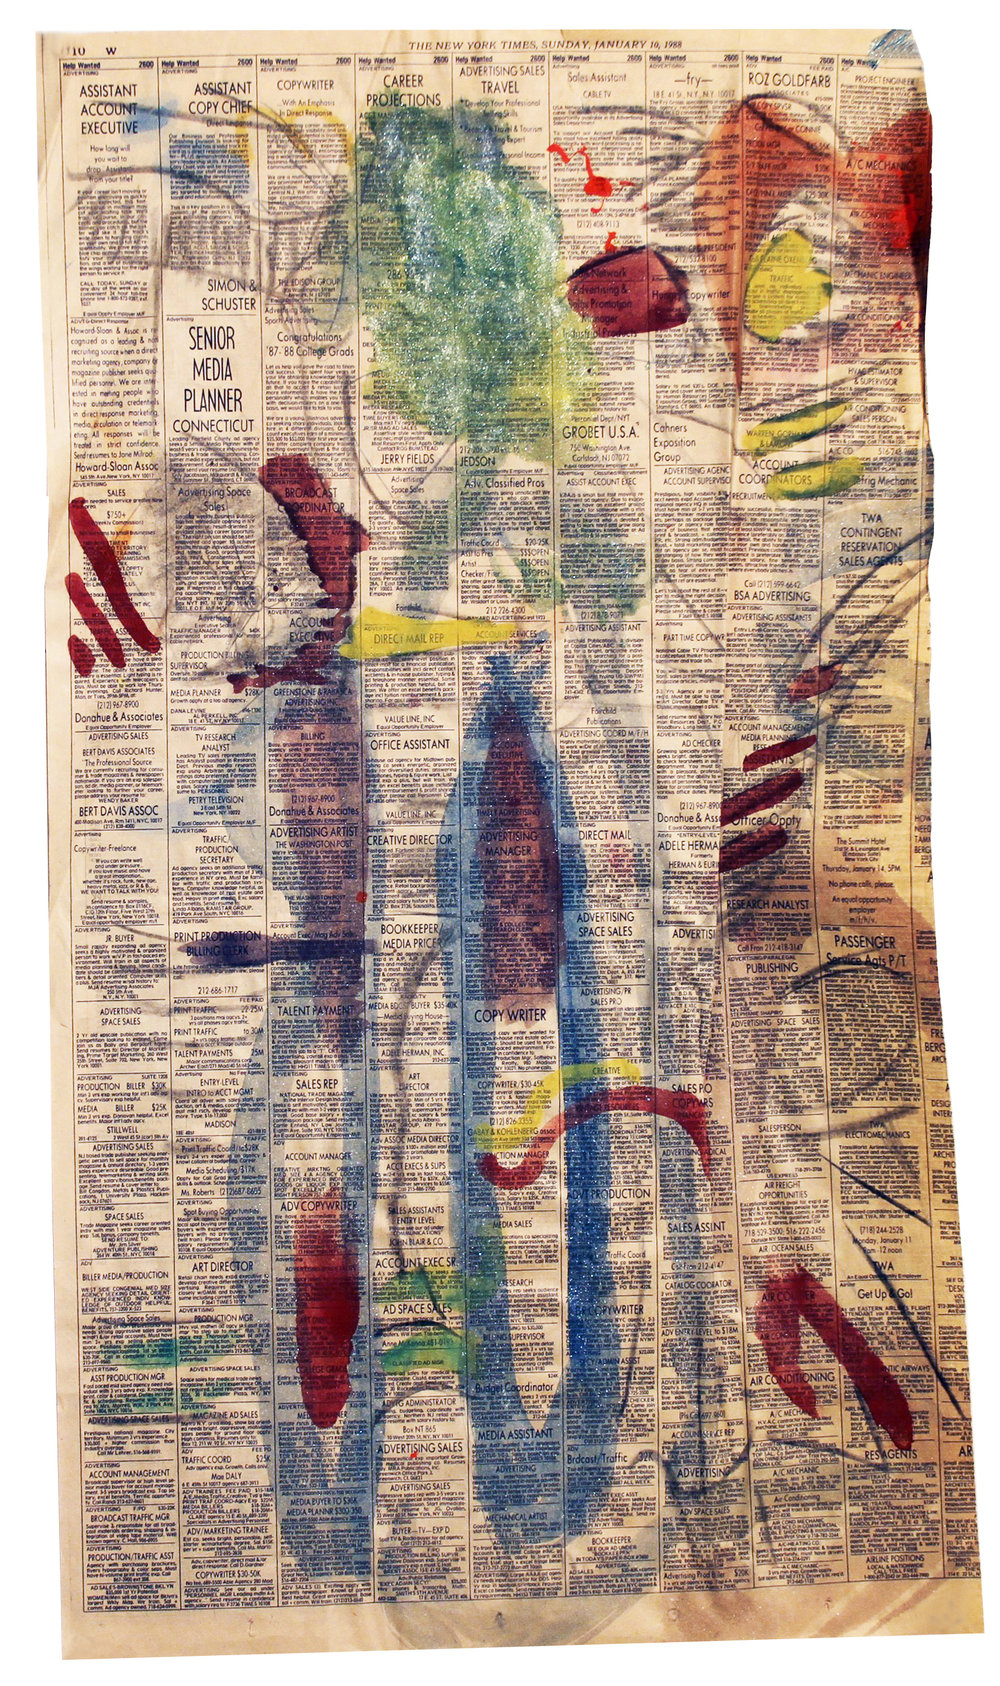 YOU GOT IT  Mixed Media on Newspaper 22 x 12 cm (56 x 30 cm)